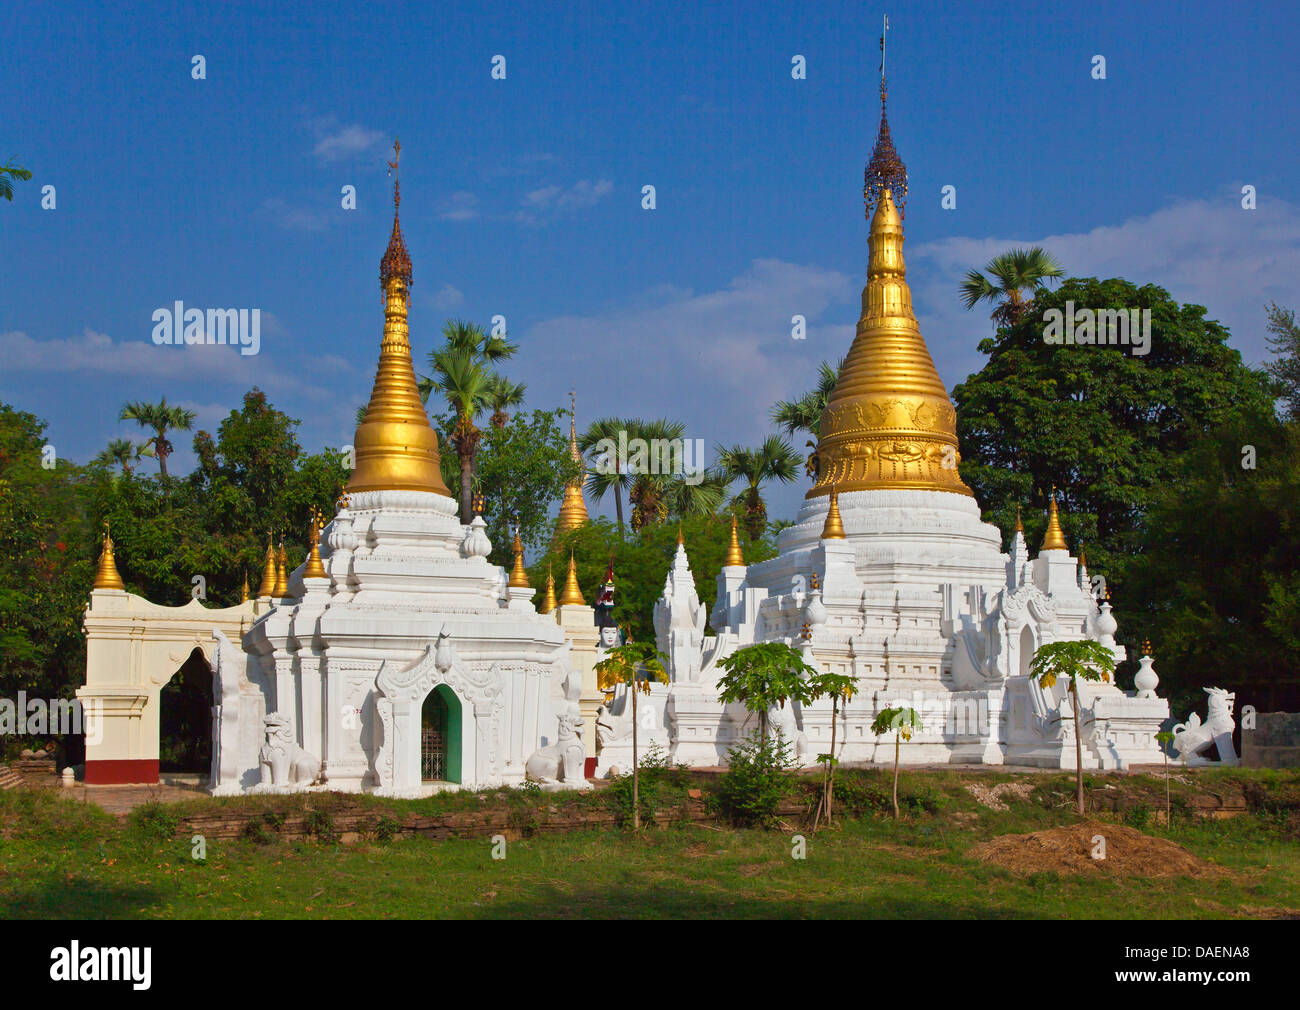 Buddhist shrines, Burma, Inwa - Stock Image